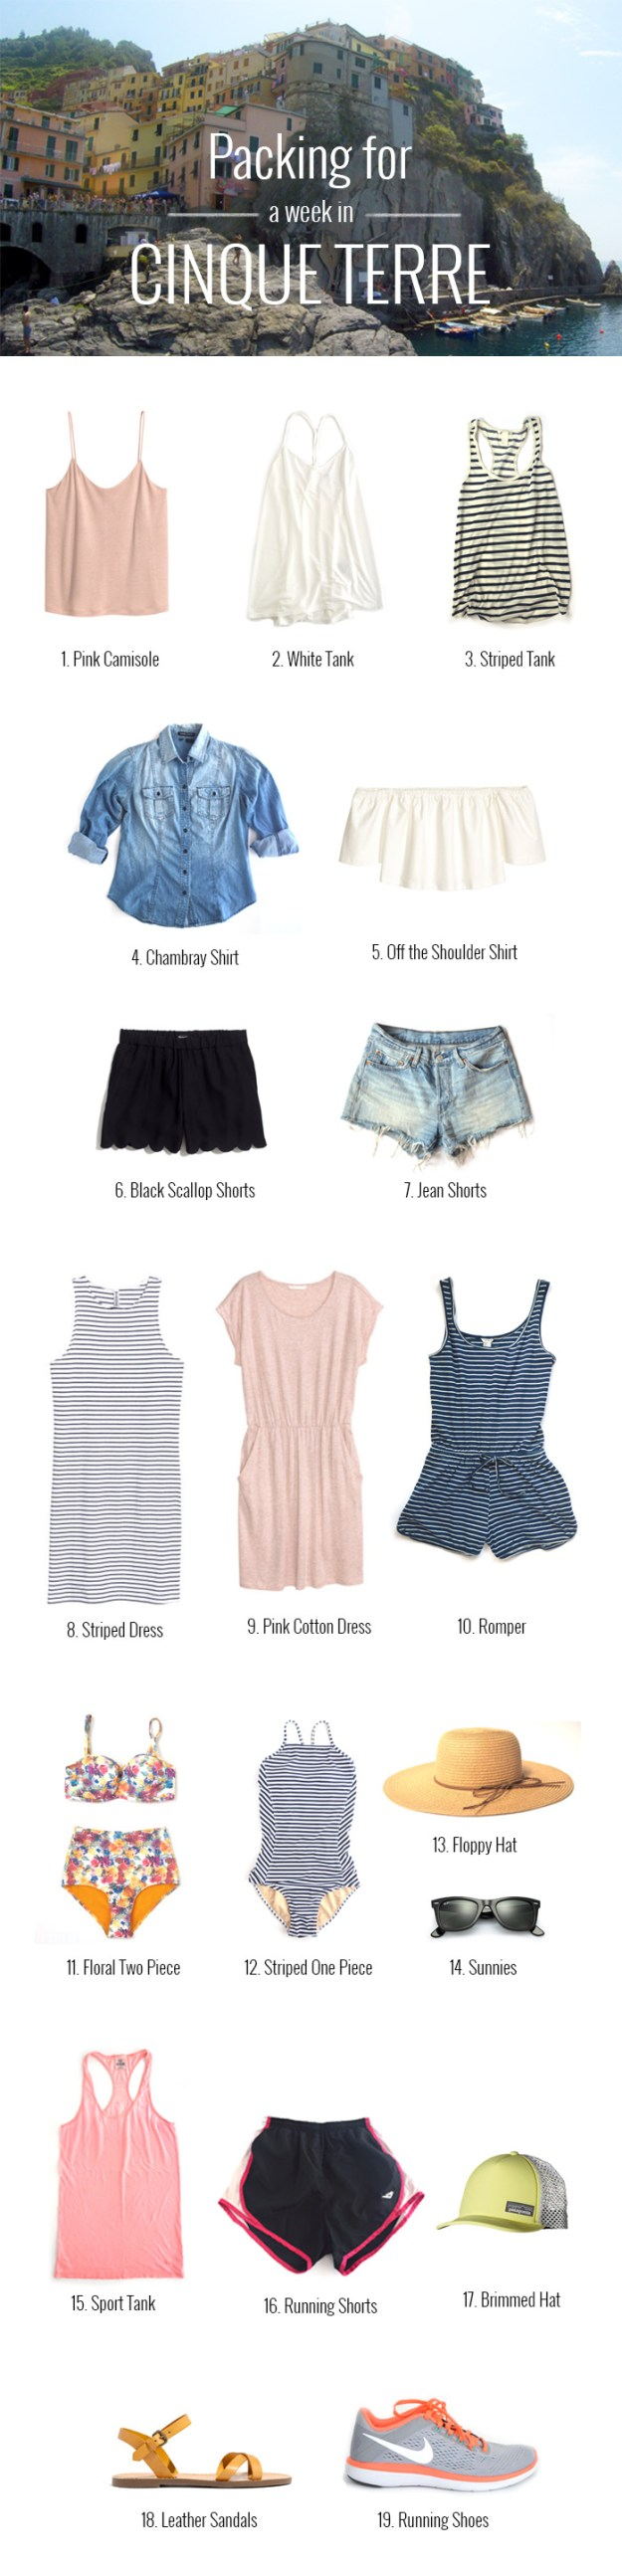 Packing List for Cinque Terre // Nattie on the Road